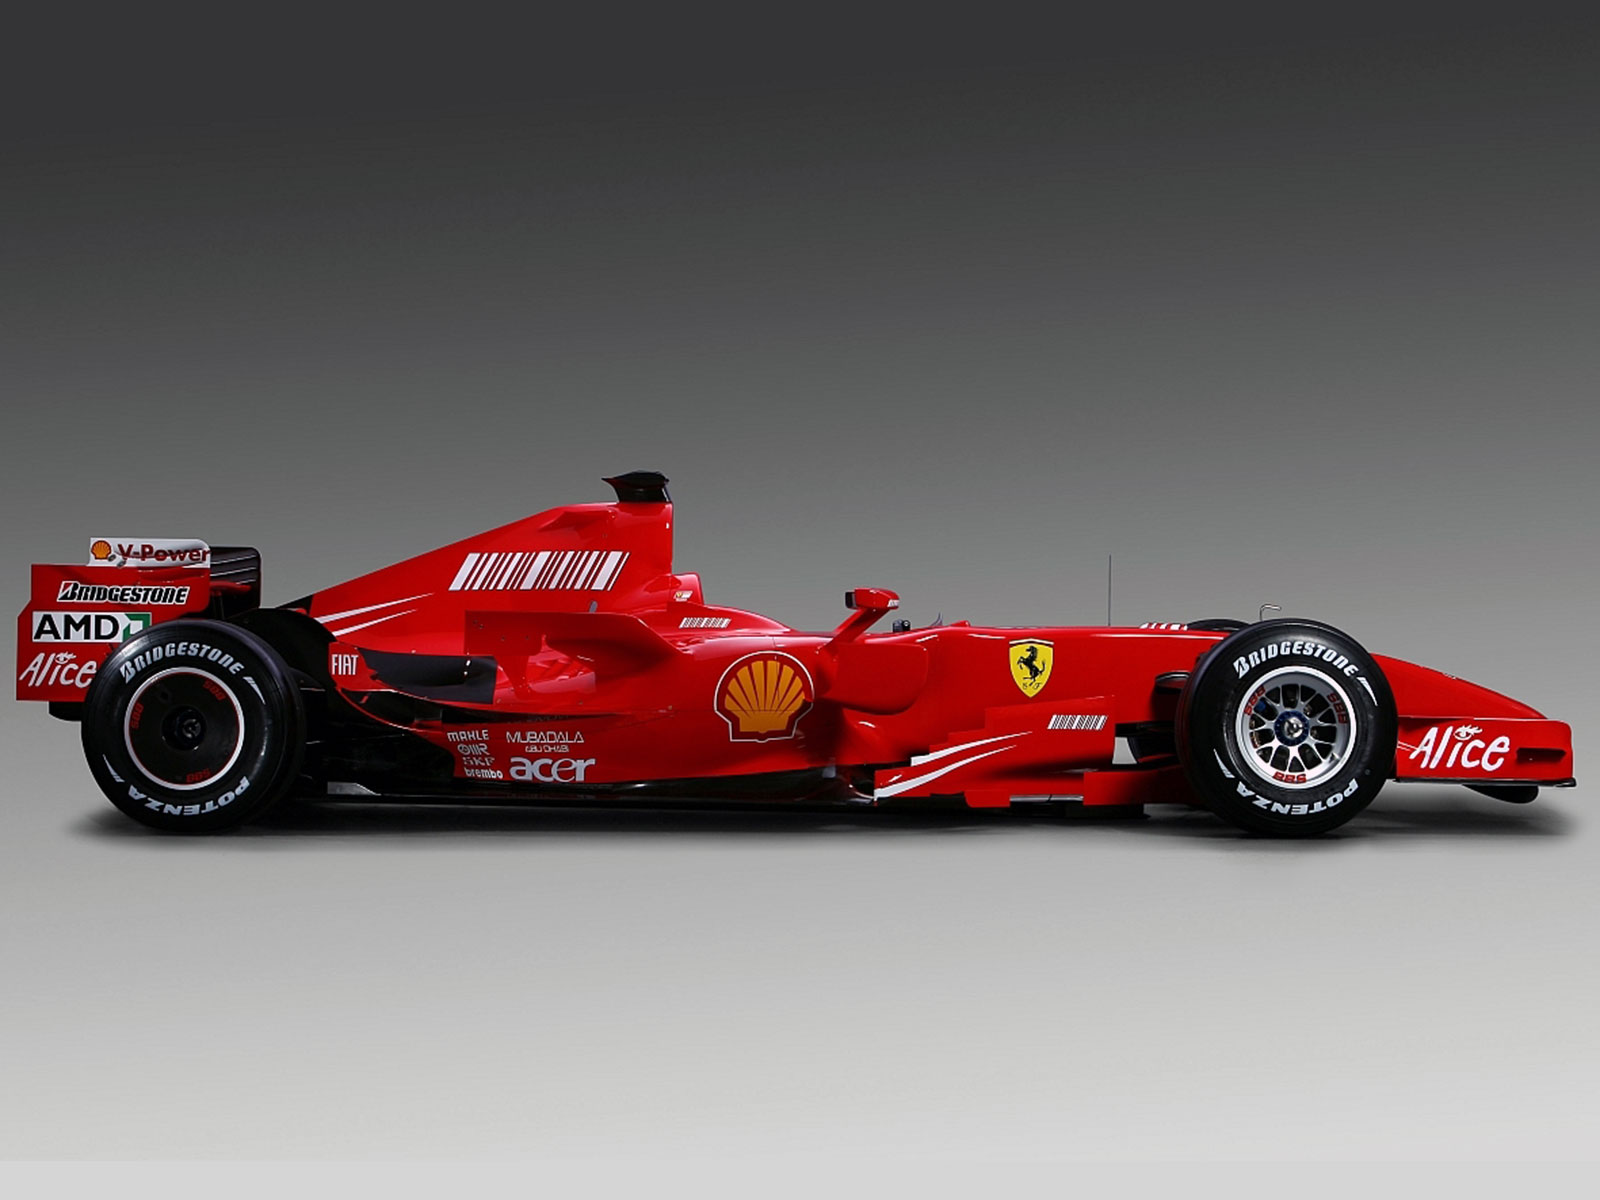 over 50 formula one cars f1 wallpapers in hd for free download. Black Bedroom Furniture Sets. Home Design Ideas